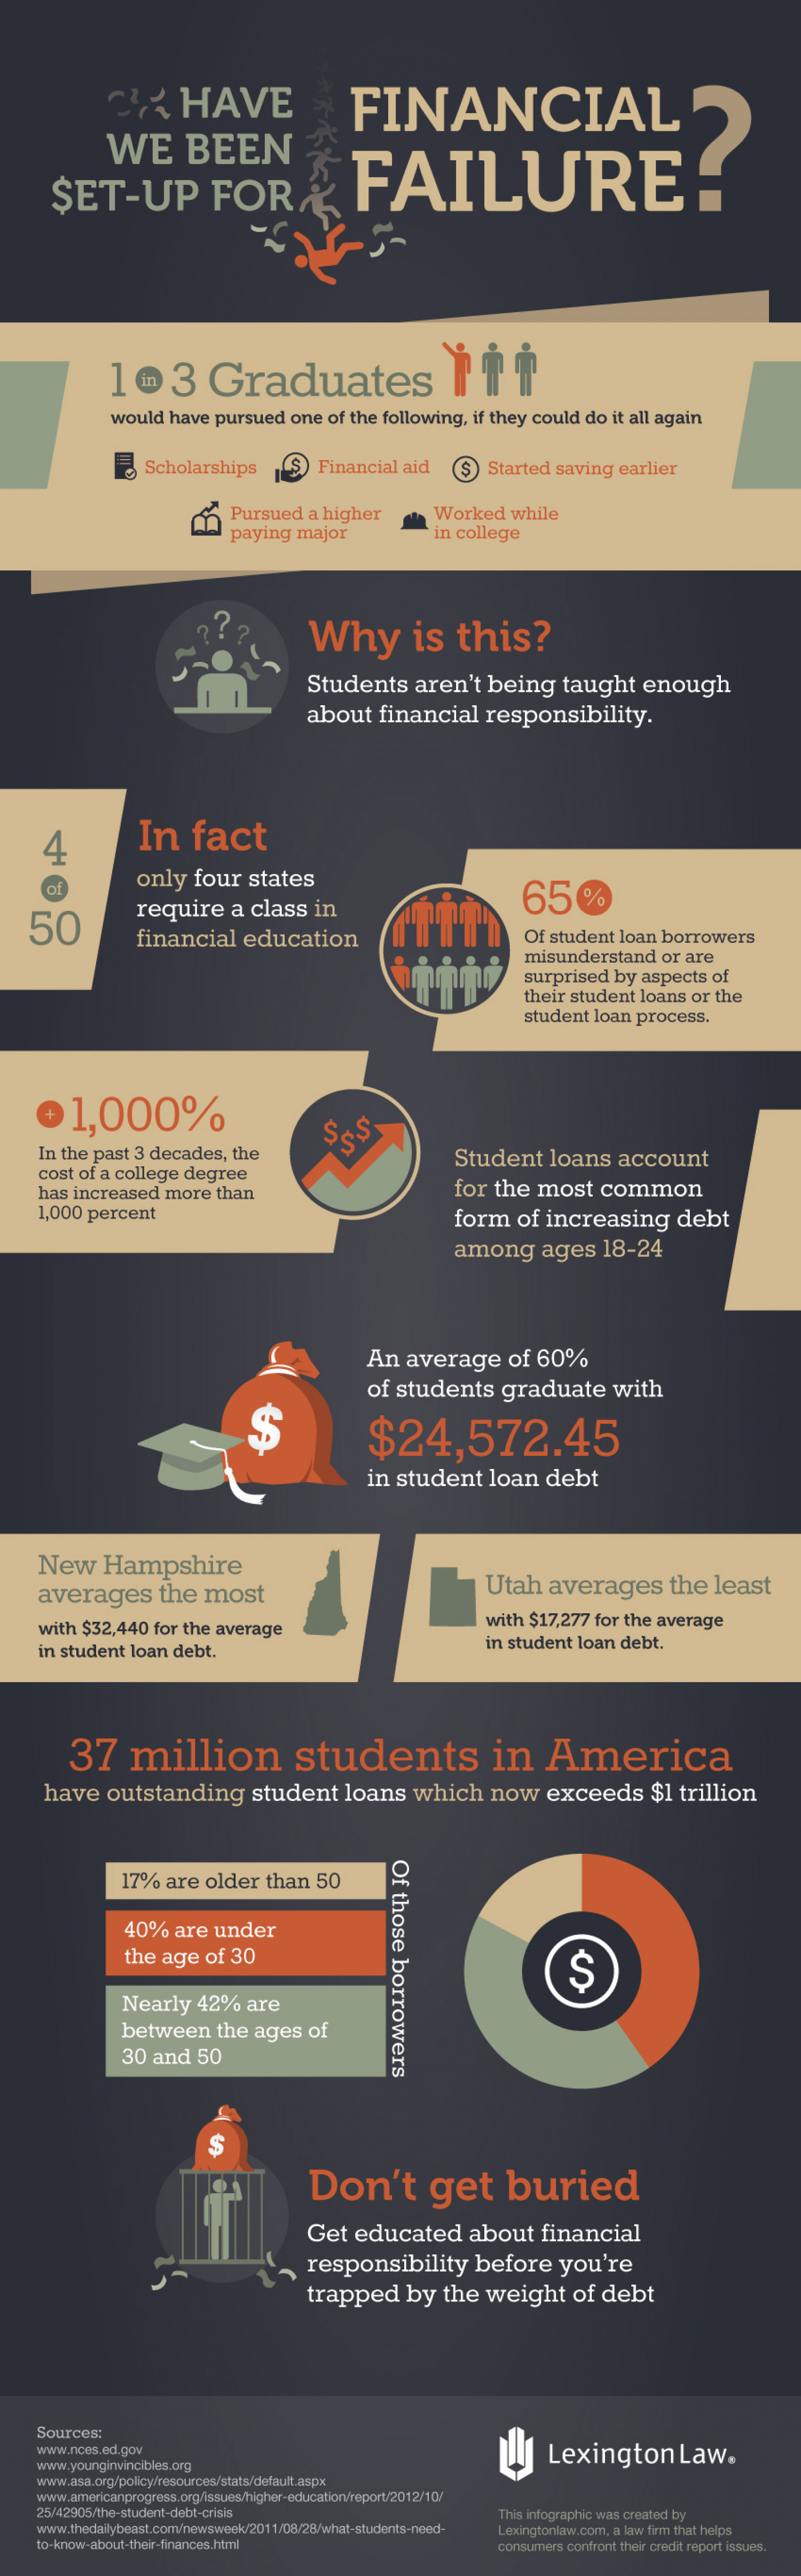 Have We Been Set Up For Financial Failure? Infographic